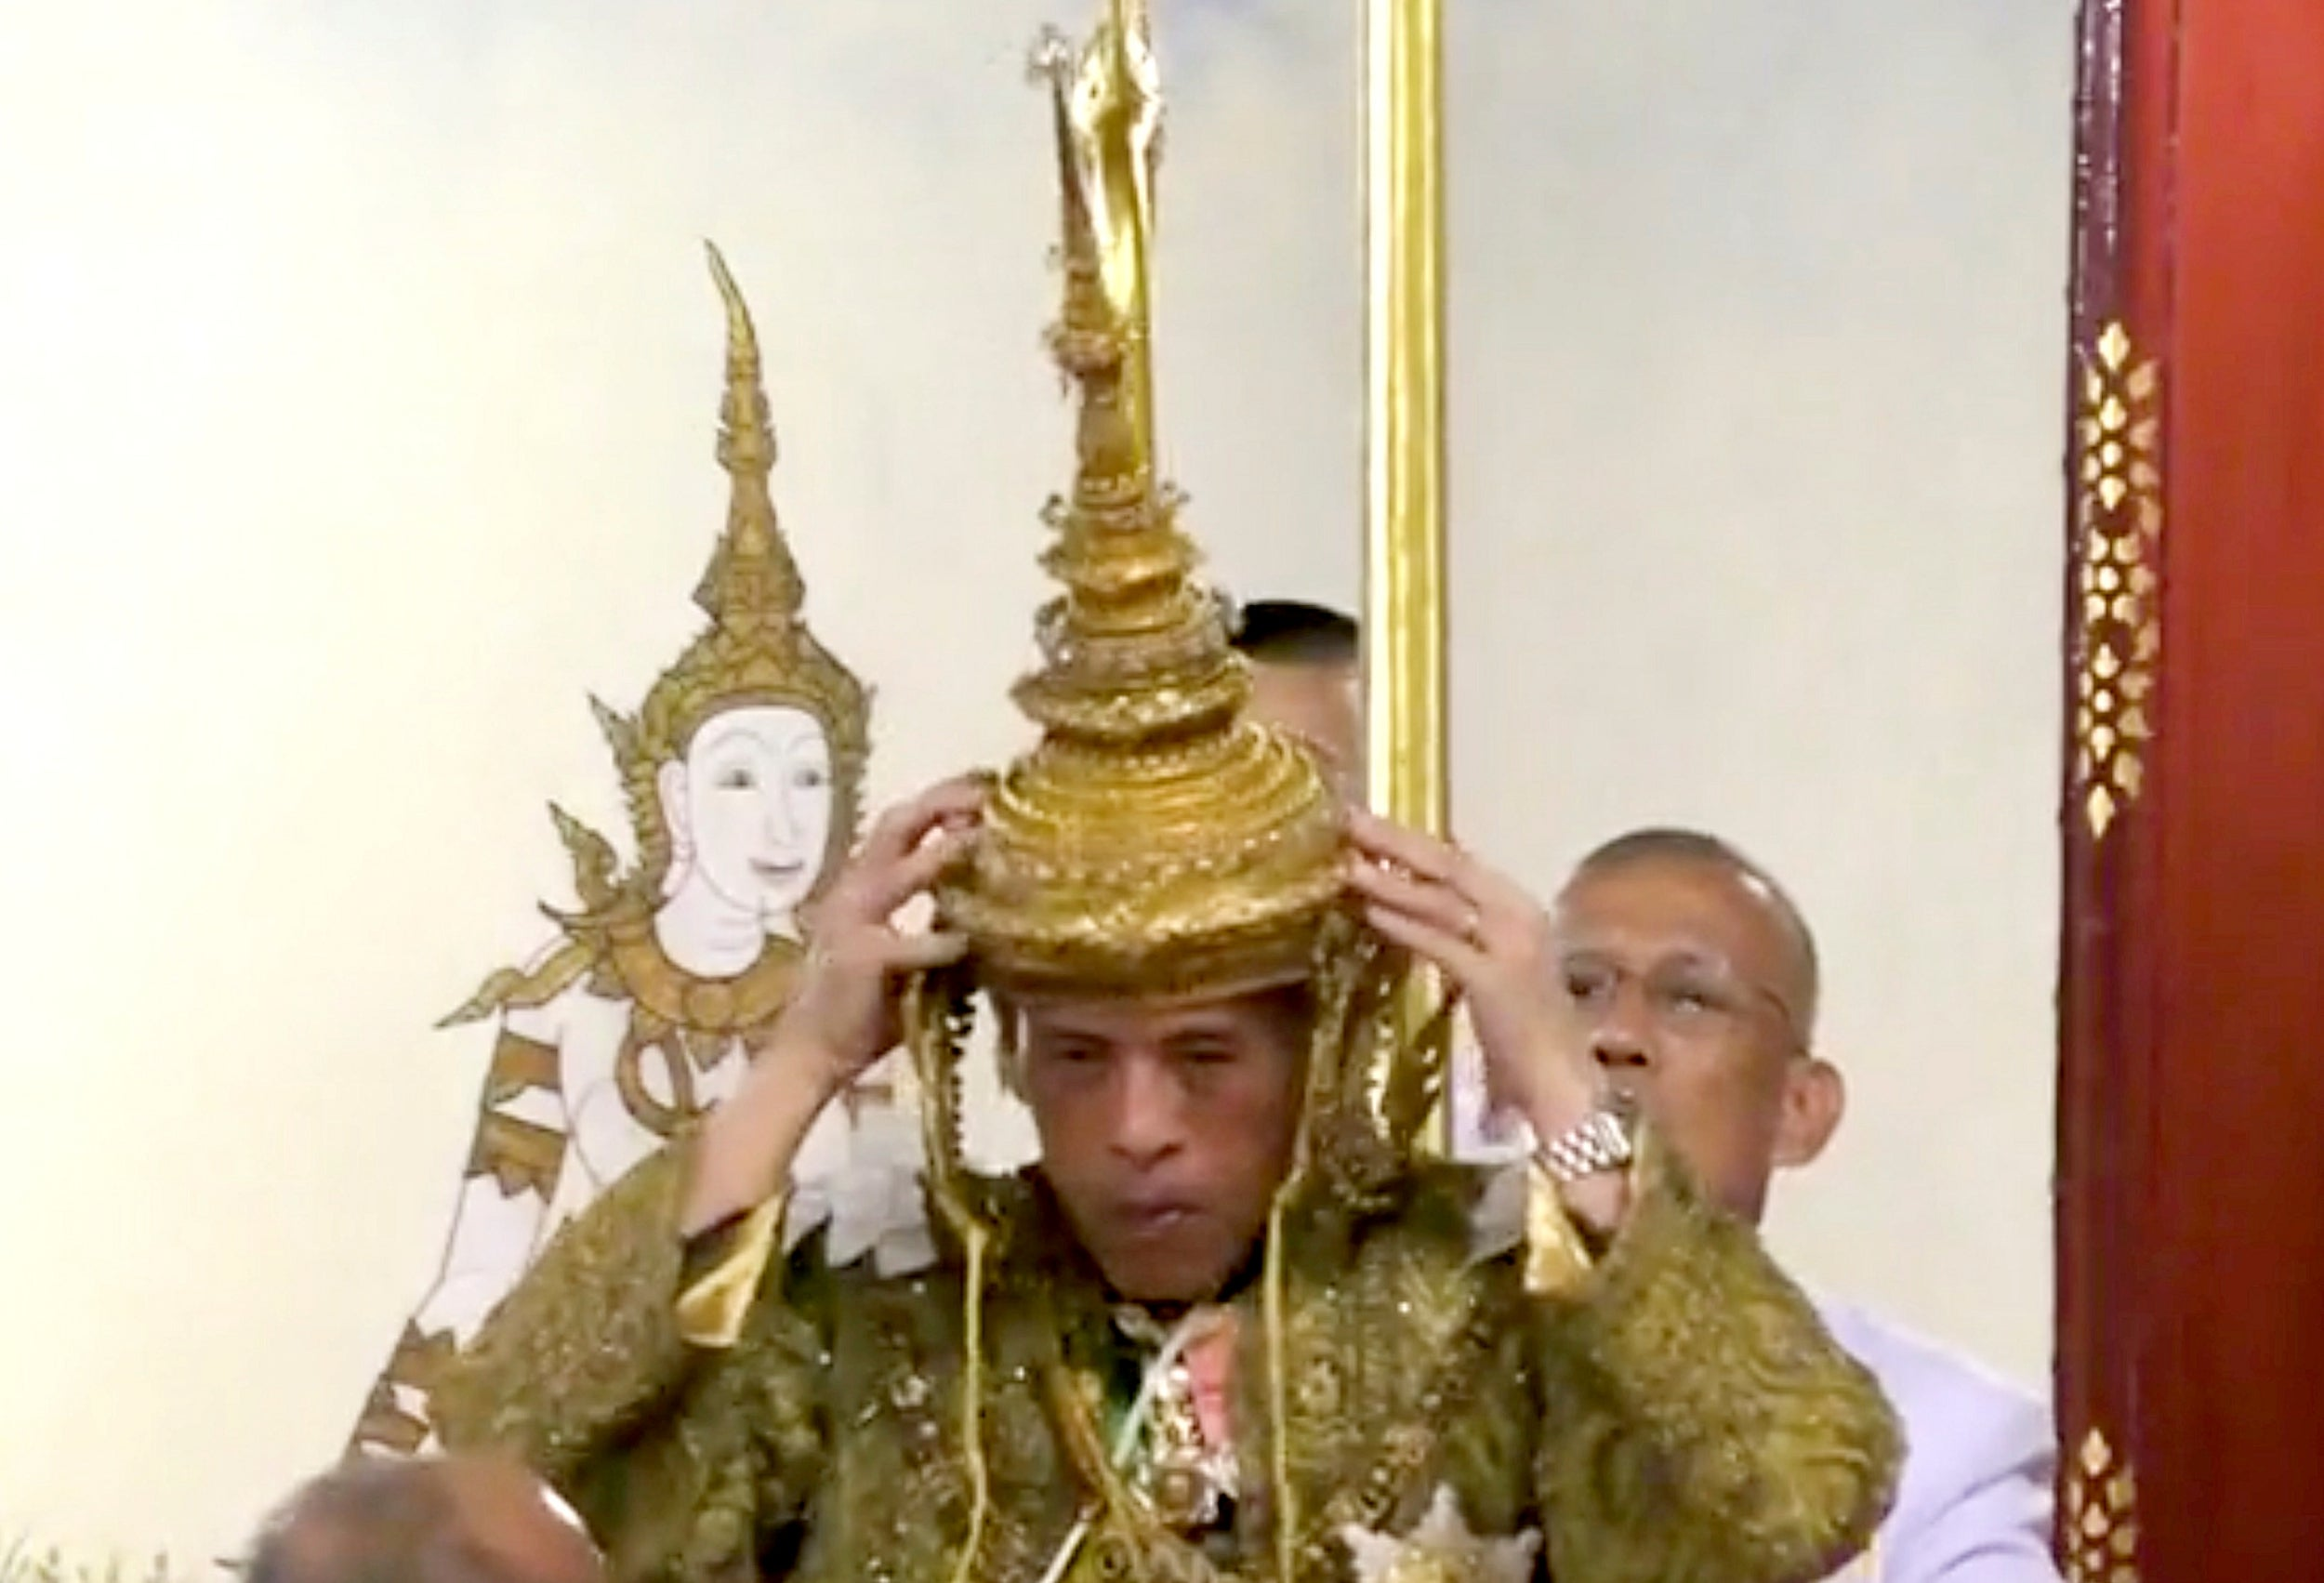 2019-05-04T072632Z-948315276-RC1EE0951570-RTRMADP-3-THAILAND-KING-CORONATION